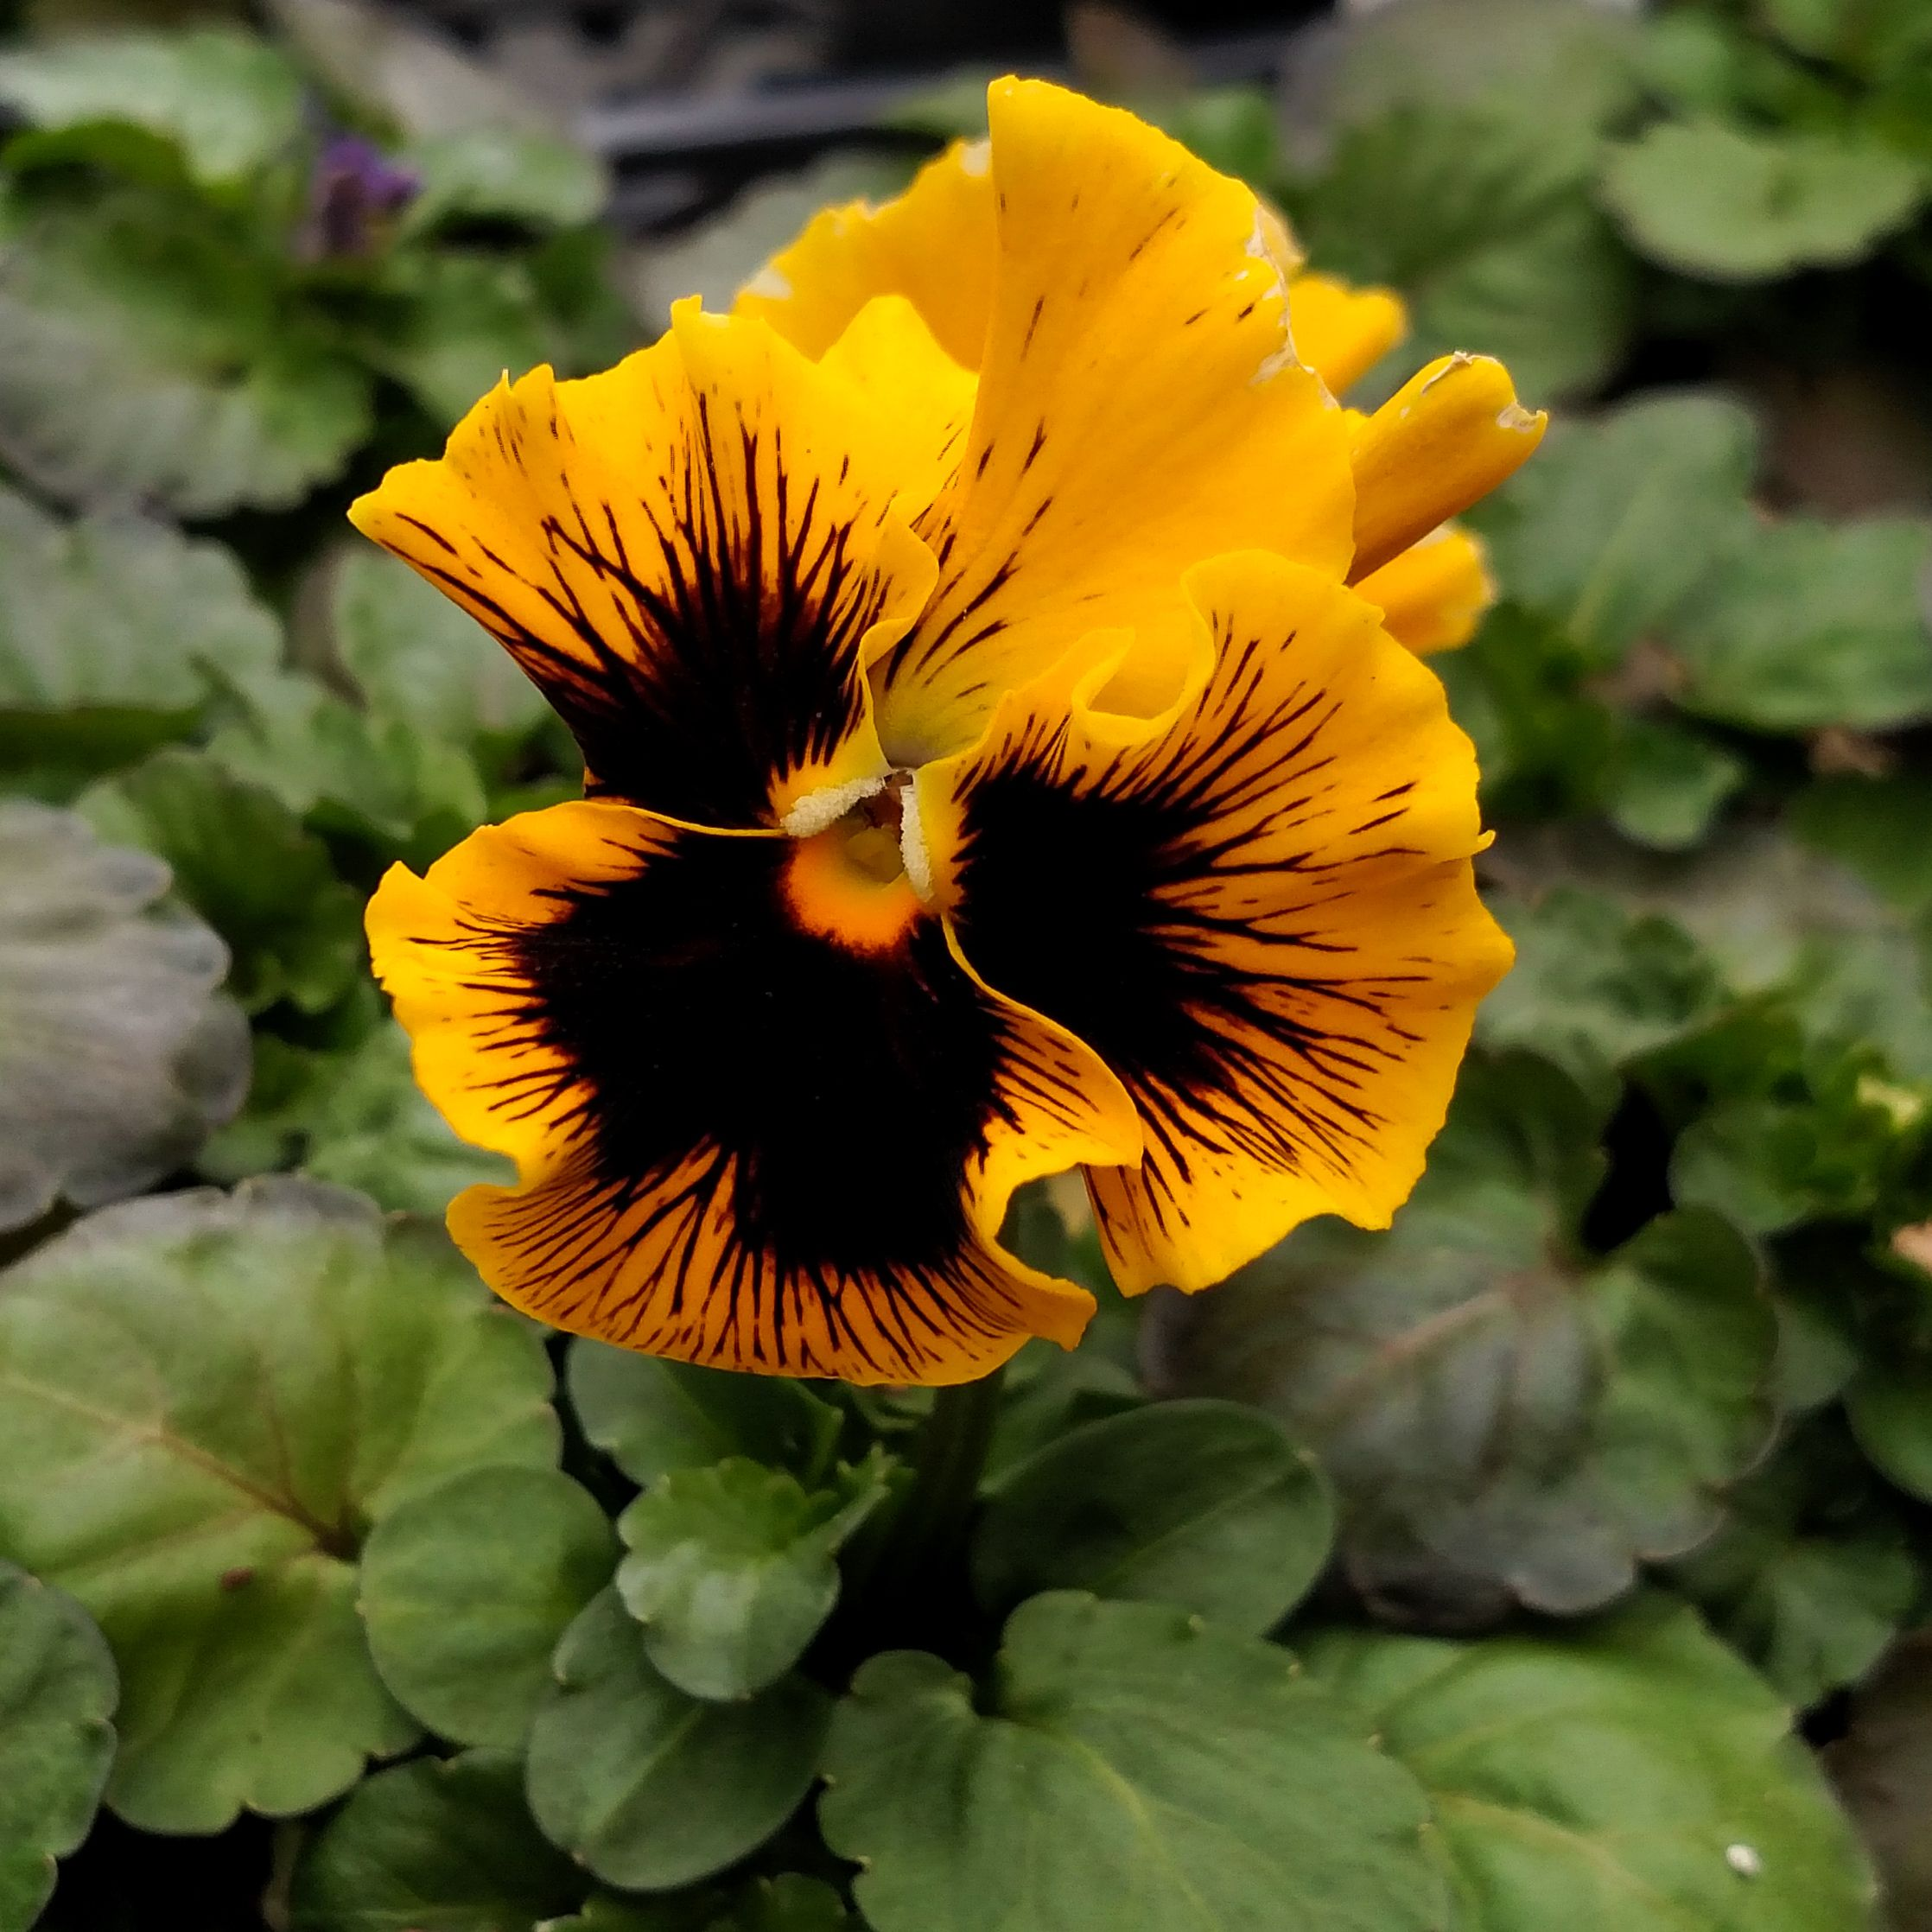 Frizzle Sizzle Yellow Pansy Plant In The Spring Plant In The Fall For Blooms Again In Spring Don T Worry About A Cold Snap Th Fall Plants Pansies Spring Plants